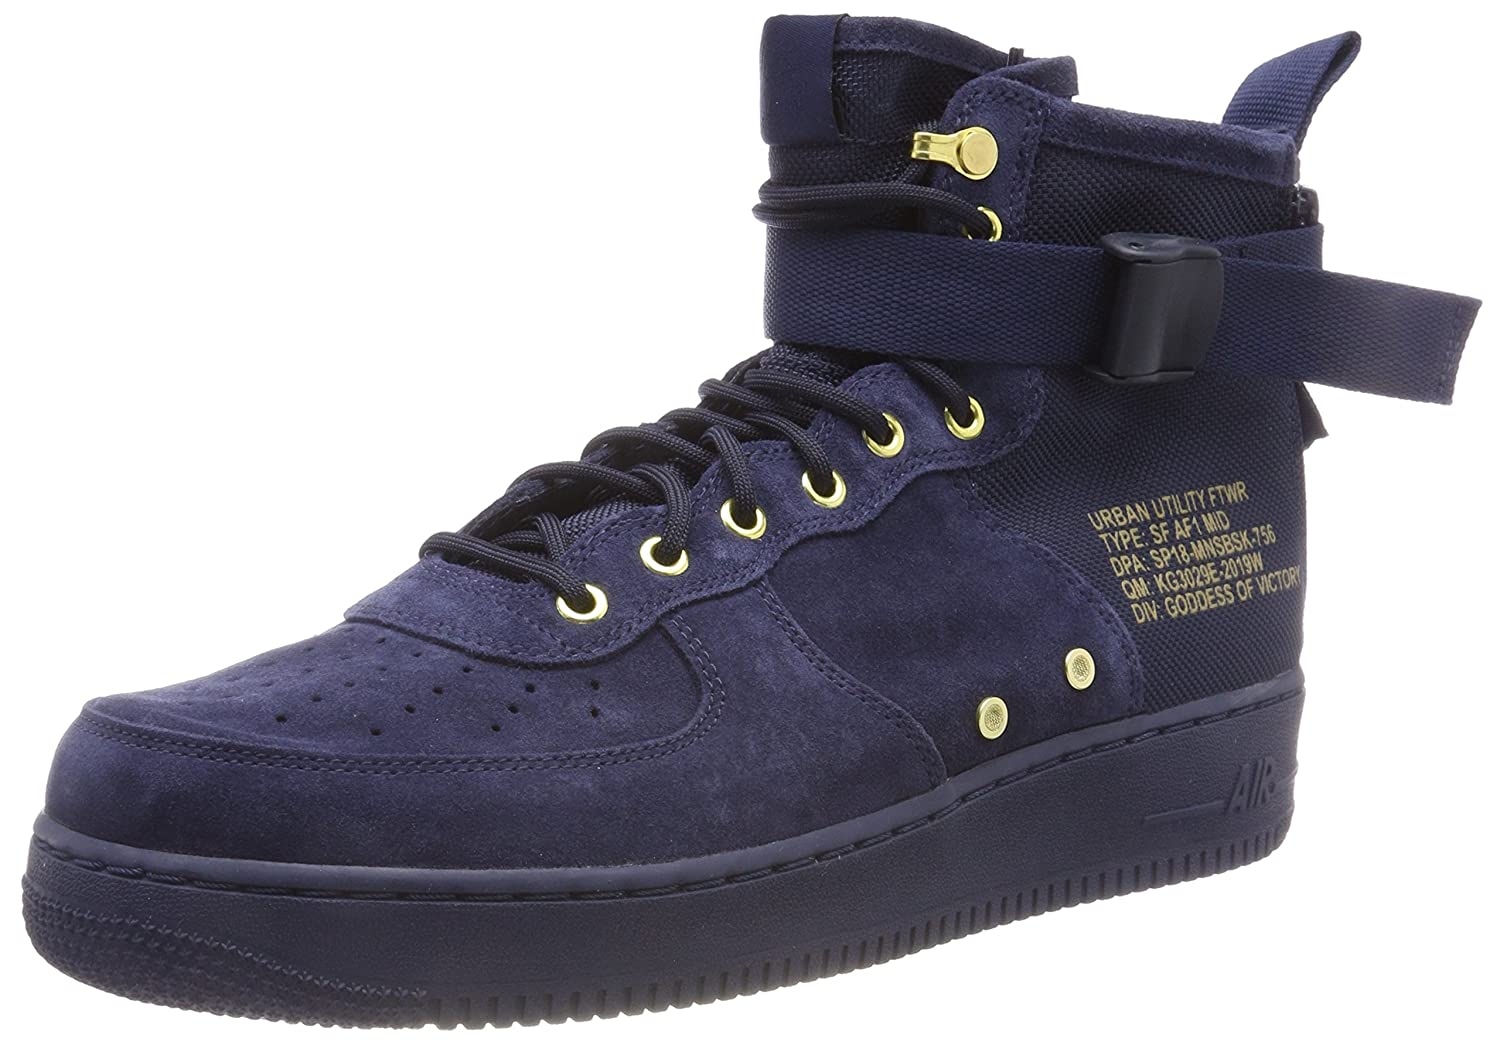 Nike SF Air Force 1 Mid Men's Basketball Shoes 917753 400